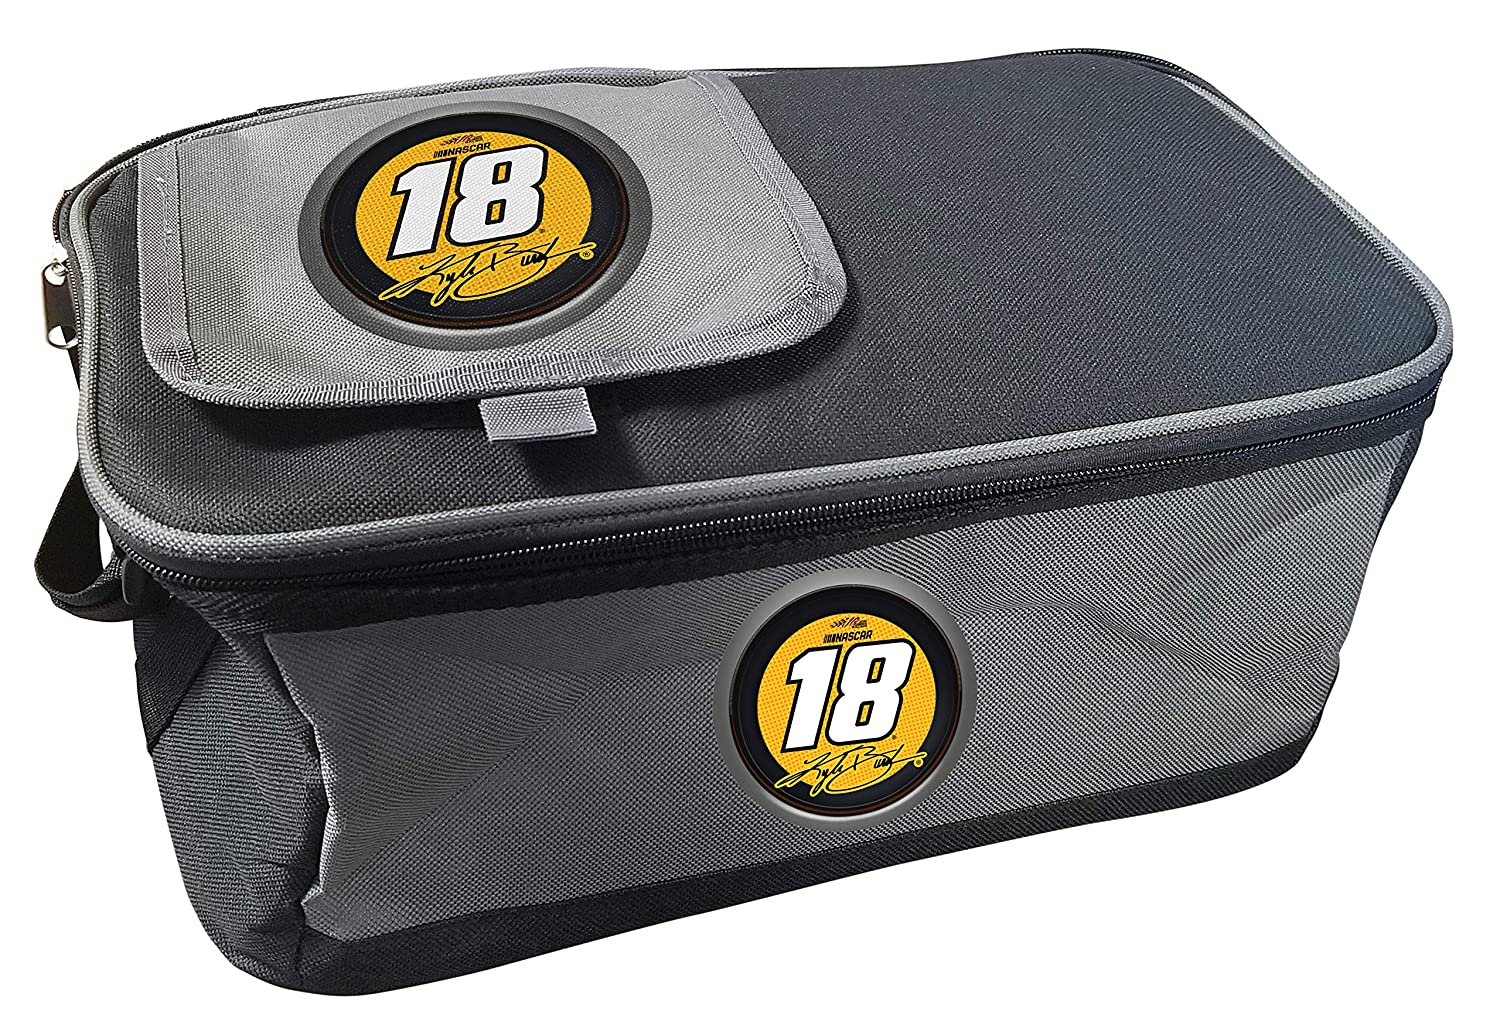 R and R Imports, Inc Kyle Busch #18 9パッククーラー